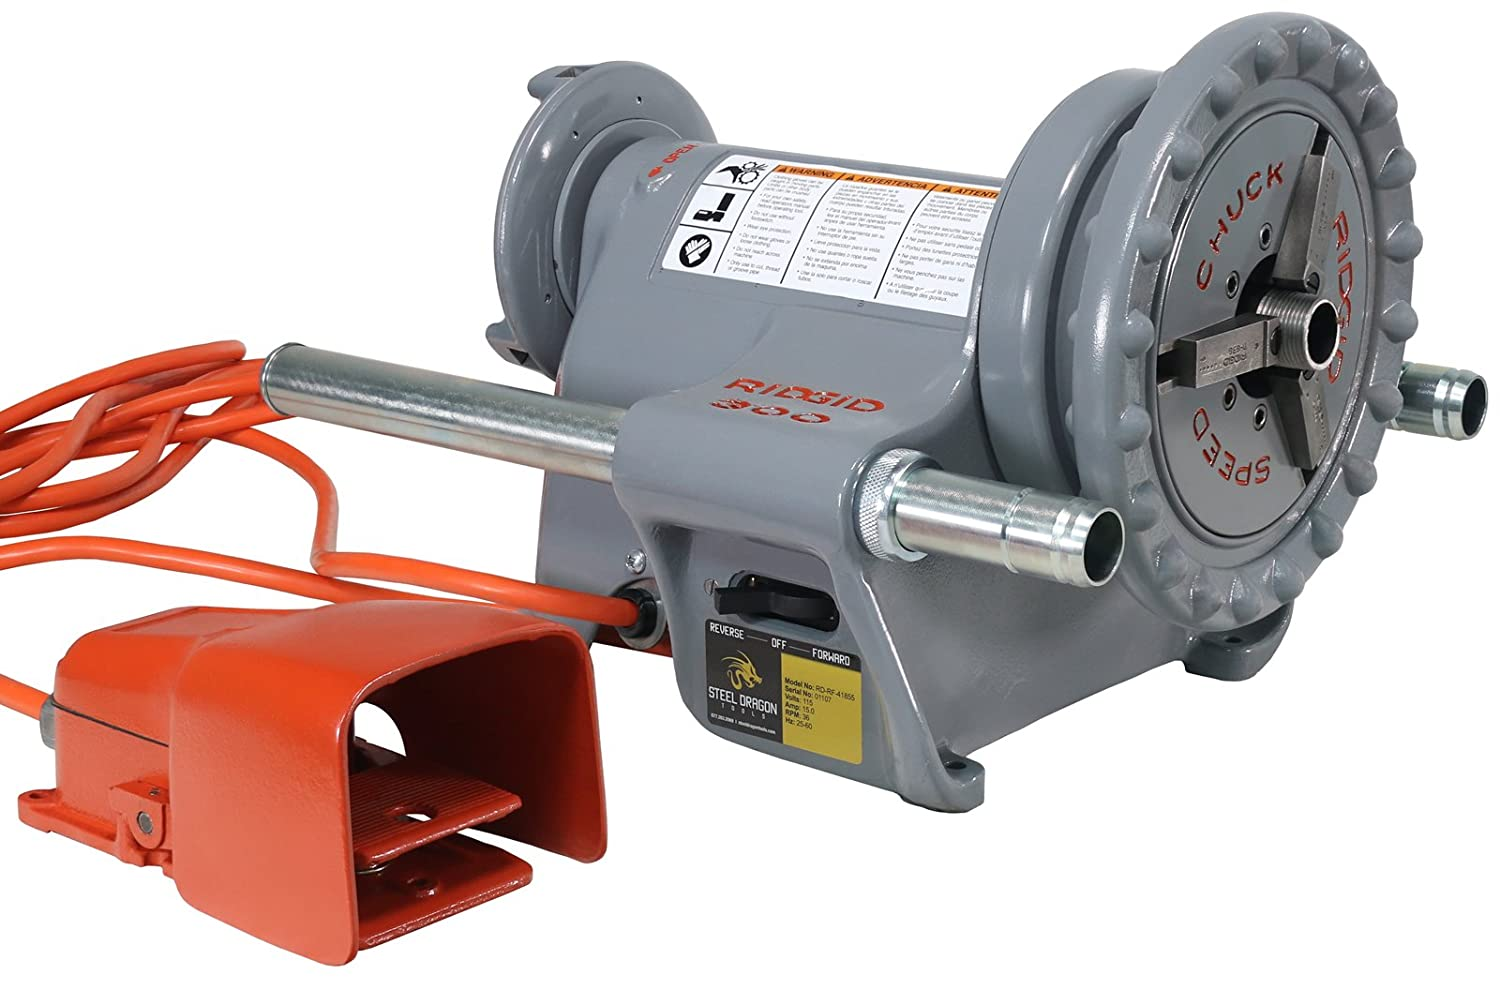 RIDGID 300 Power Drive 41855 Threading Machine with Foot Pedal (Reconditioned) Steel Dragon Tools